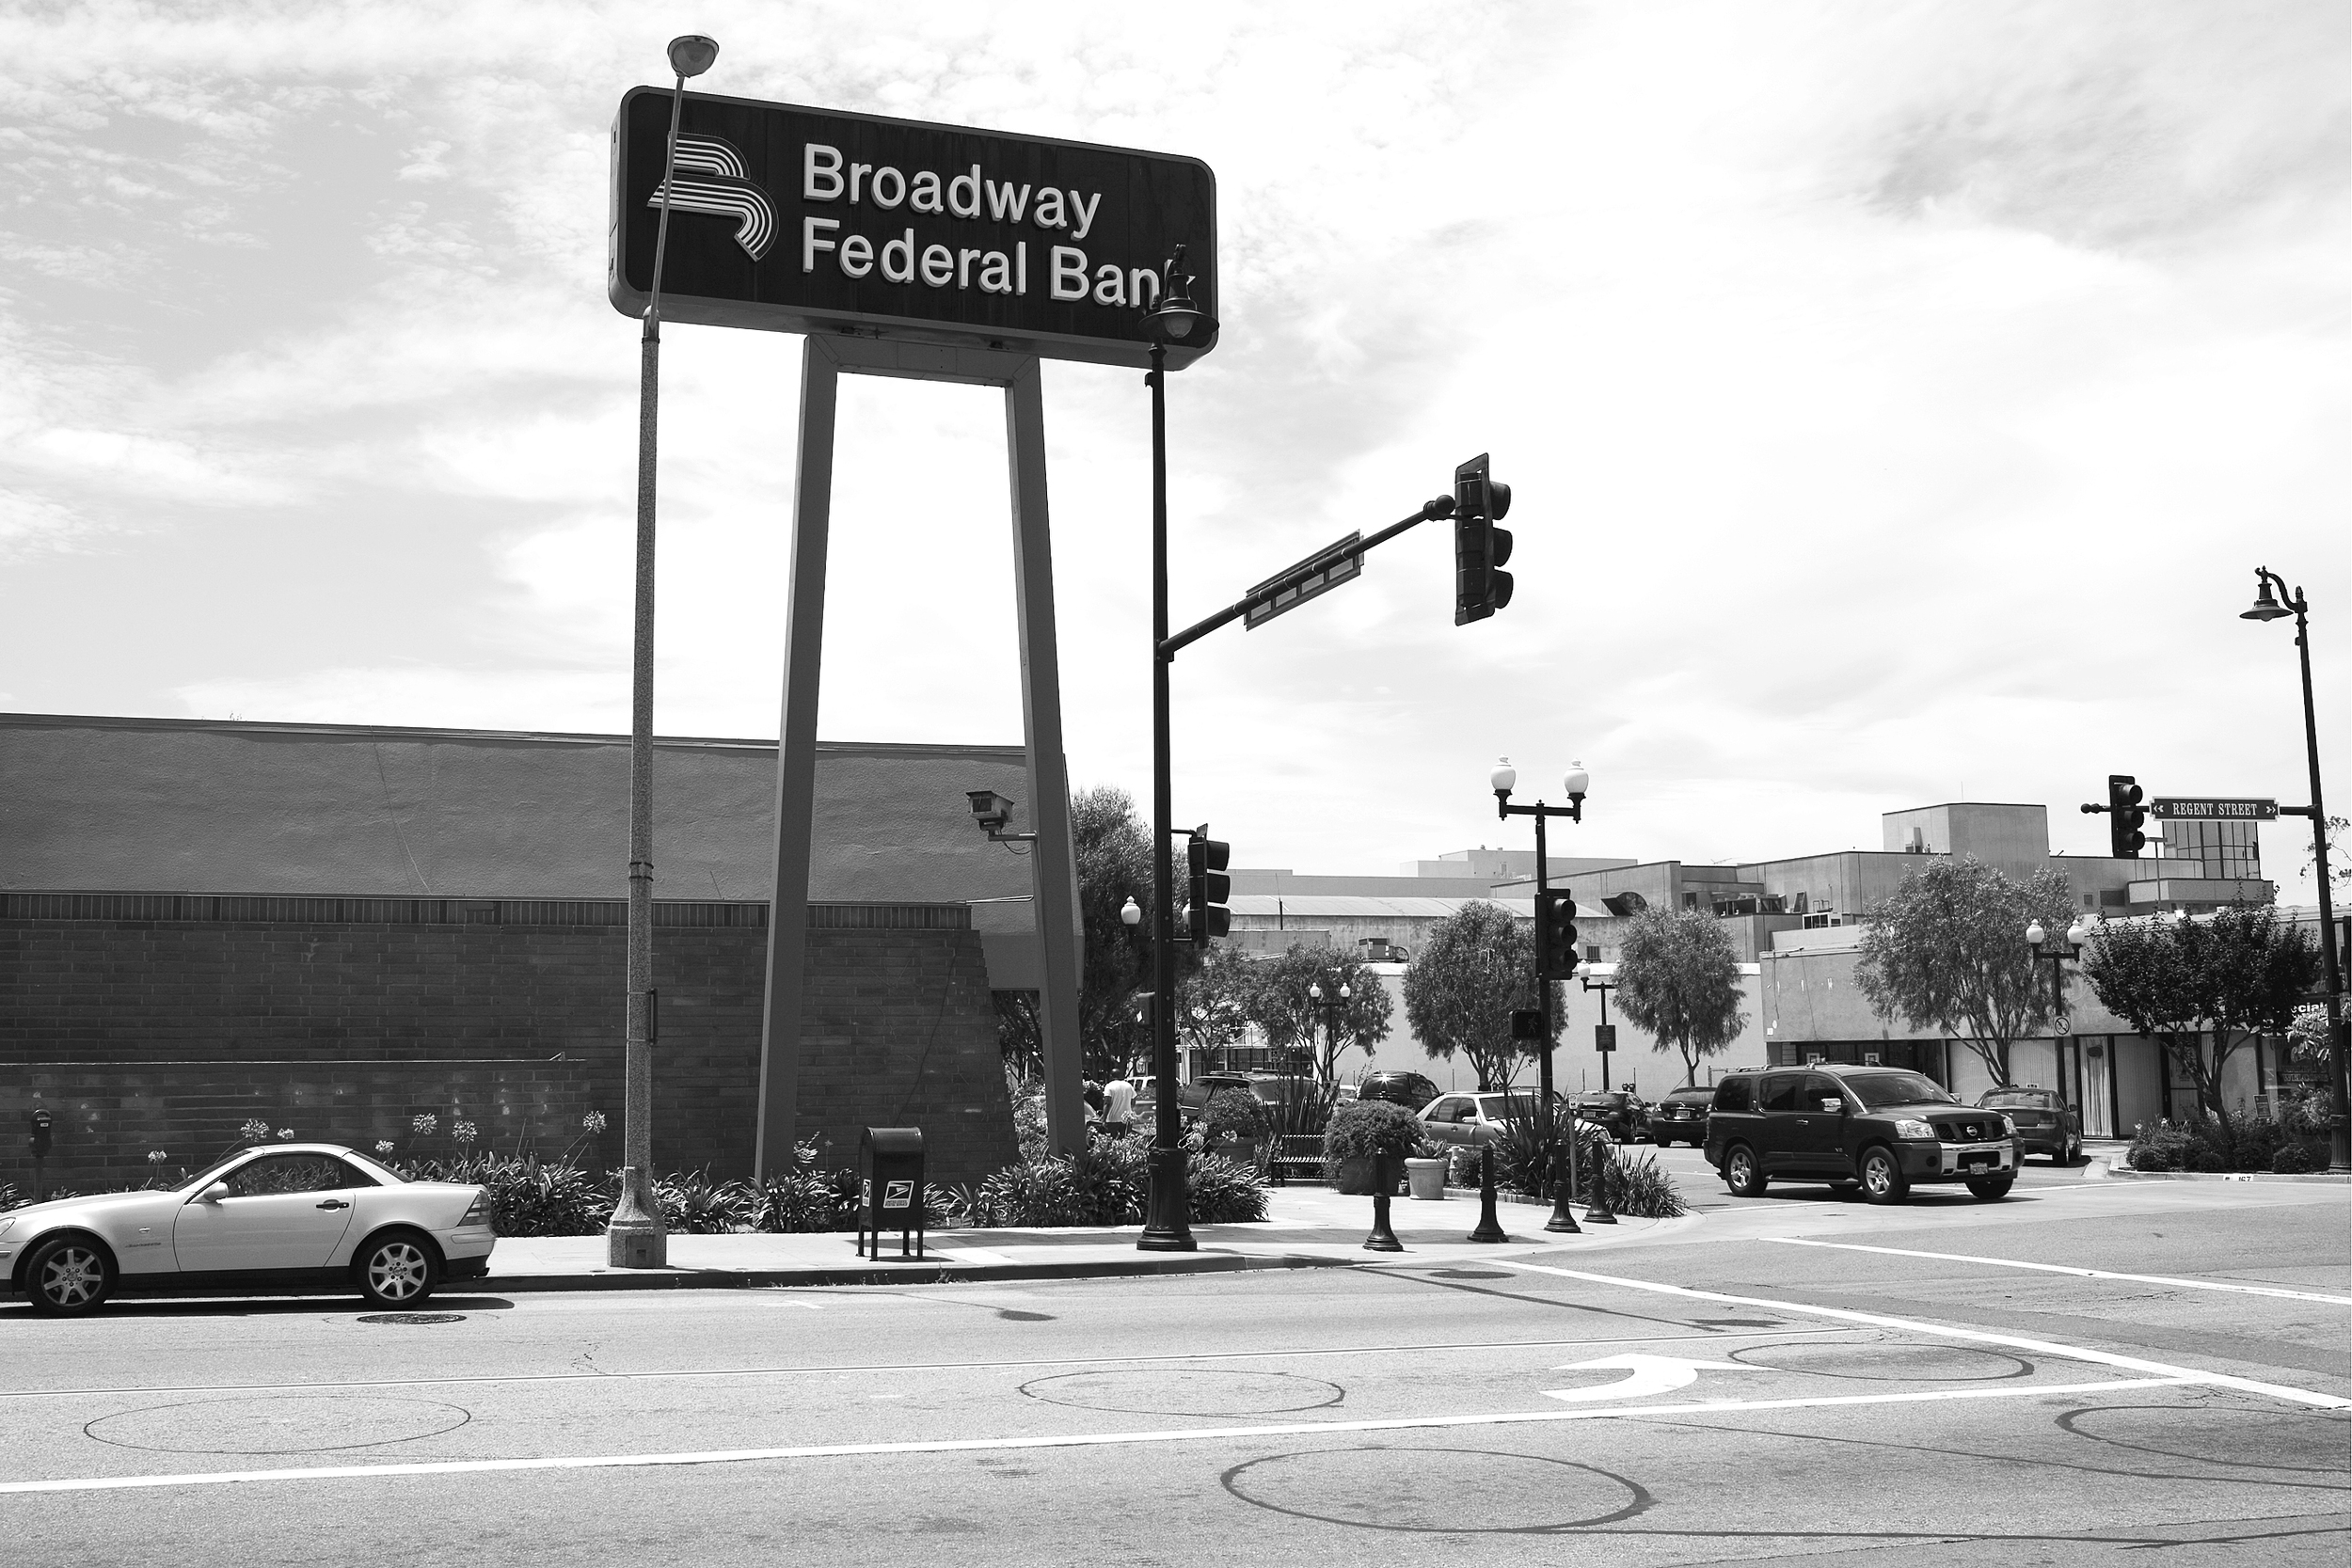 """Broadway Federal Bank, Inglewood. With several branches throughout South Los Angeles, Broadway Federal is a Black-owned bank that has served the community since 1946. 2009.                                0     false             18 pt     18 pt     0     0         false     false     false                                                     /* Style Definitions */ table.MsoNormalTable {mso-style-name:""""Table Normal""""; mso-tstyle-rowband-size:0; mso-tstyle-colband-size:0; mso-style-noshow:yes; mso-style-parent:""""""""; mso-padding-alt:0in 5.4pt 0in 5.4pt; mso-para-margin:0in; mso-para-margin-bottom:.0001pt; mso-pagination:widow-orphan; font-size:10.0pt; font-family:""""Times New Roman"""";}"""